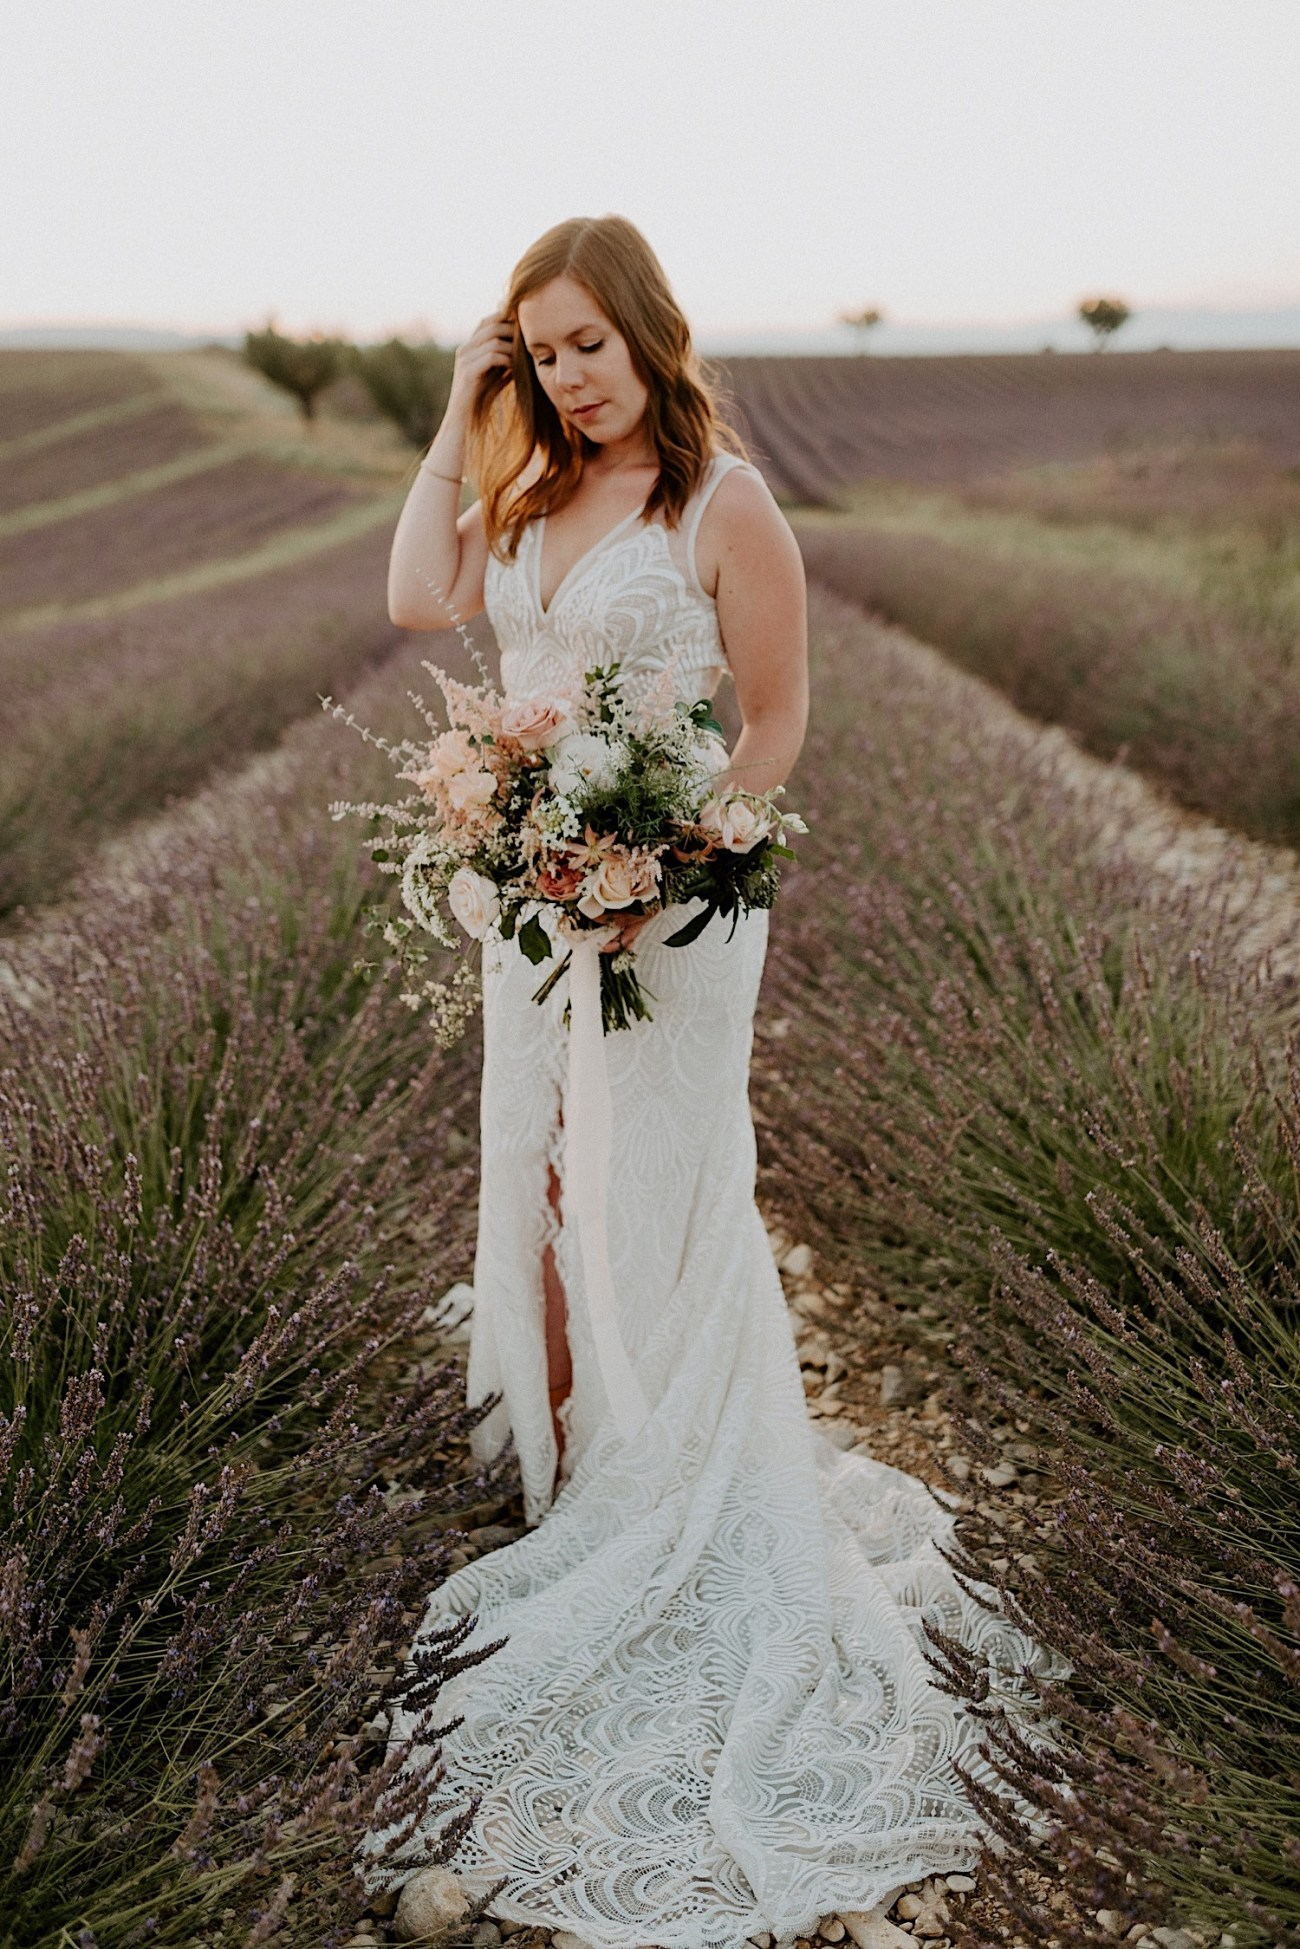 Valensole Wedding Photos Lavender Field Wedding Provence Wedding French Wedding Photographer Destination Wedding France Anais Possamai Photography 11